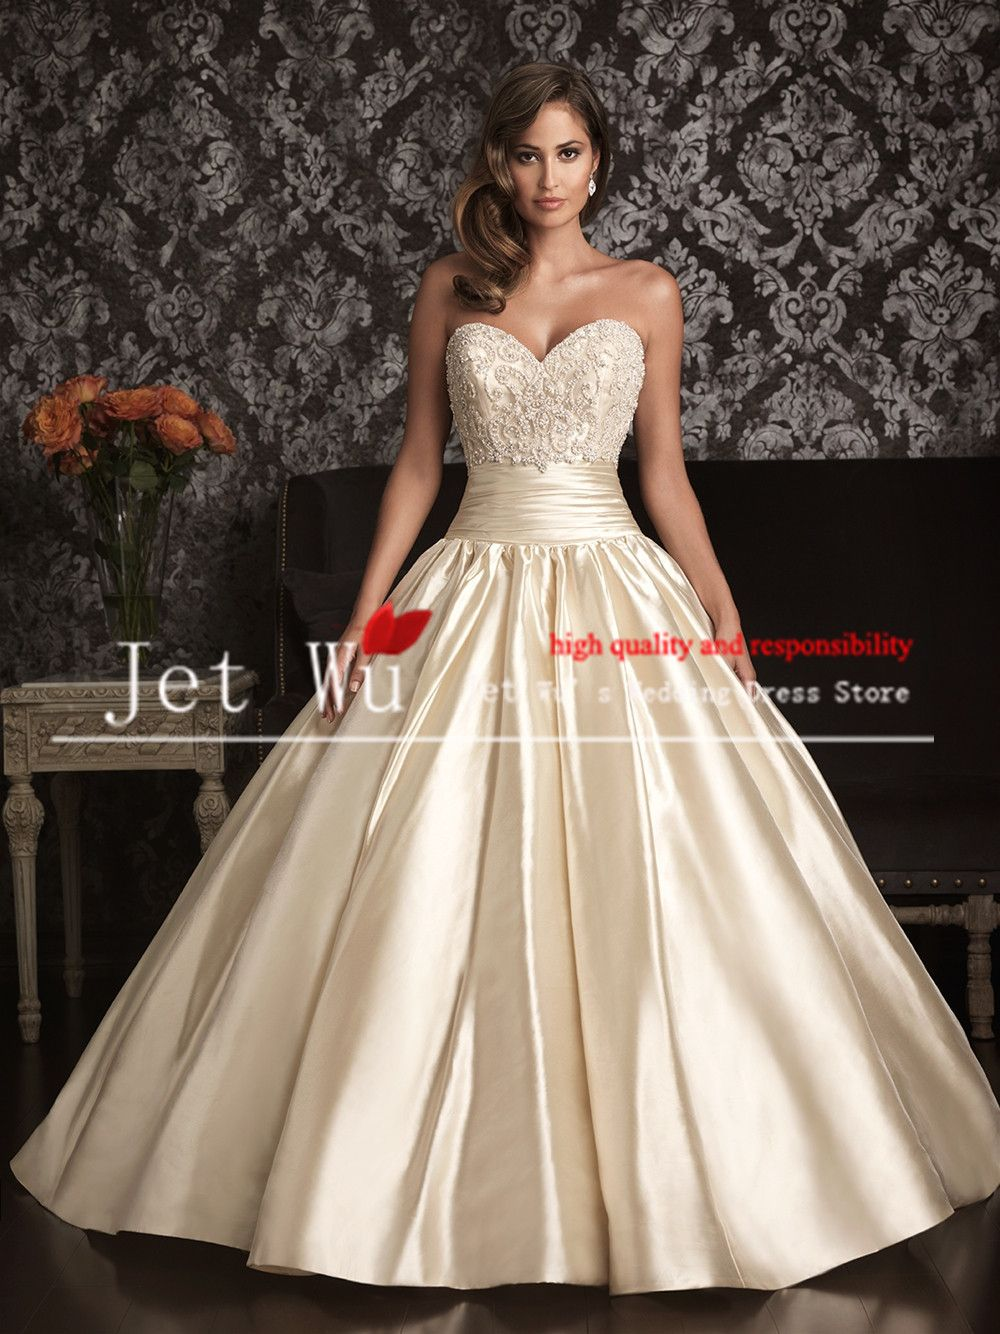 Ball Gown Beautiful Sweetheart Heavy Beading Corset Clean Skirt Chagne Color Satin Bridal Wedding Dress 2017: Corset Color Wedding Dresses At Websimilar.org